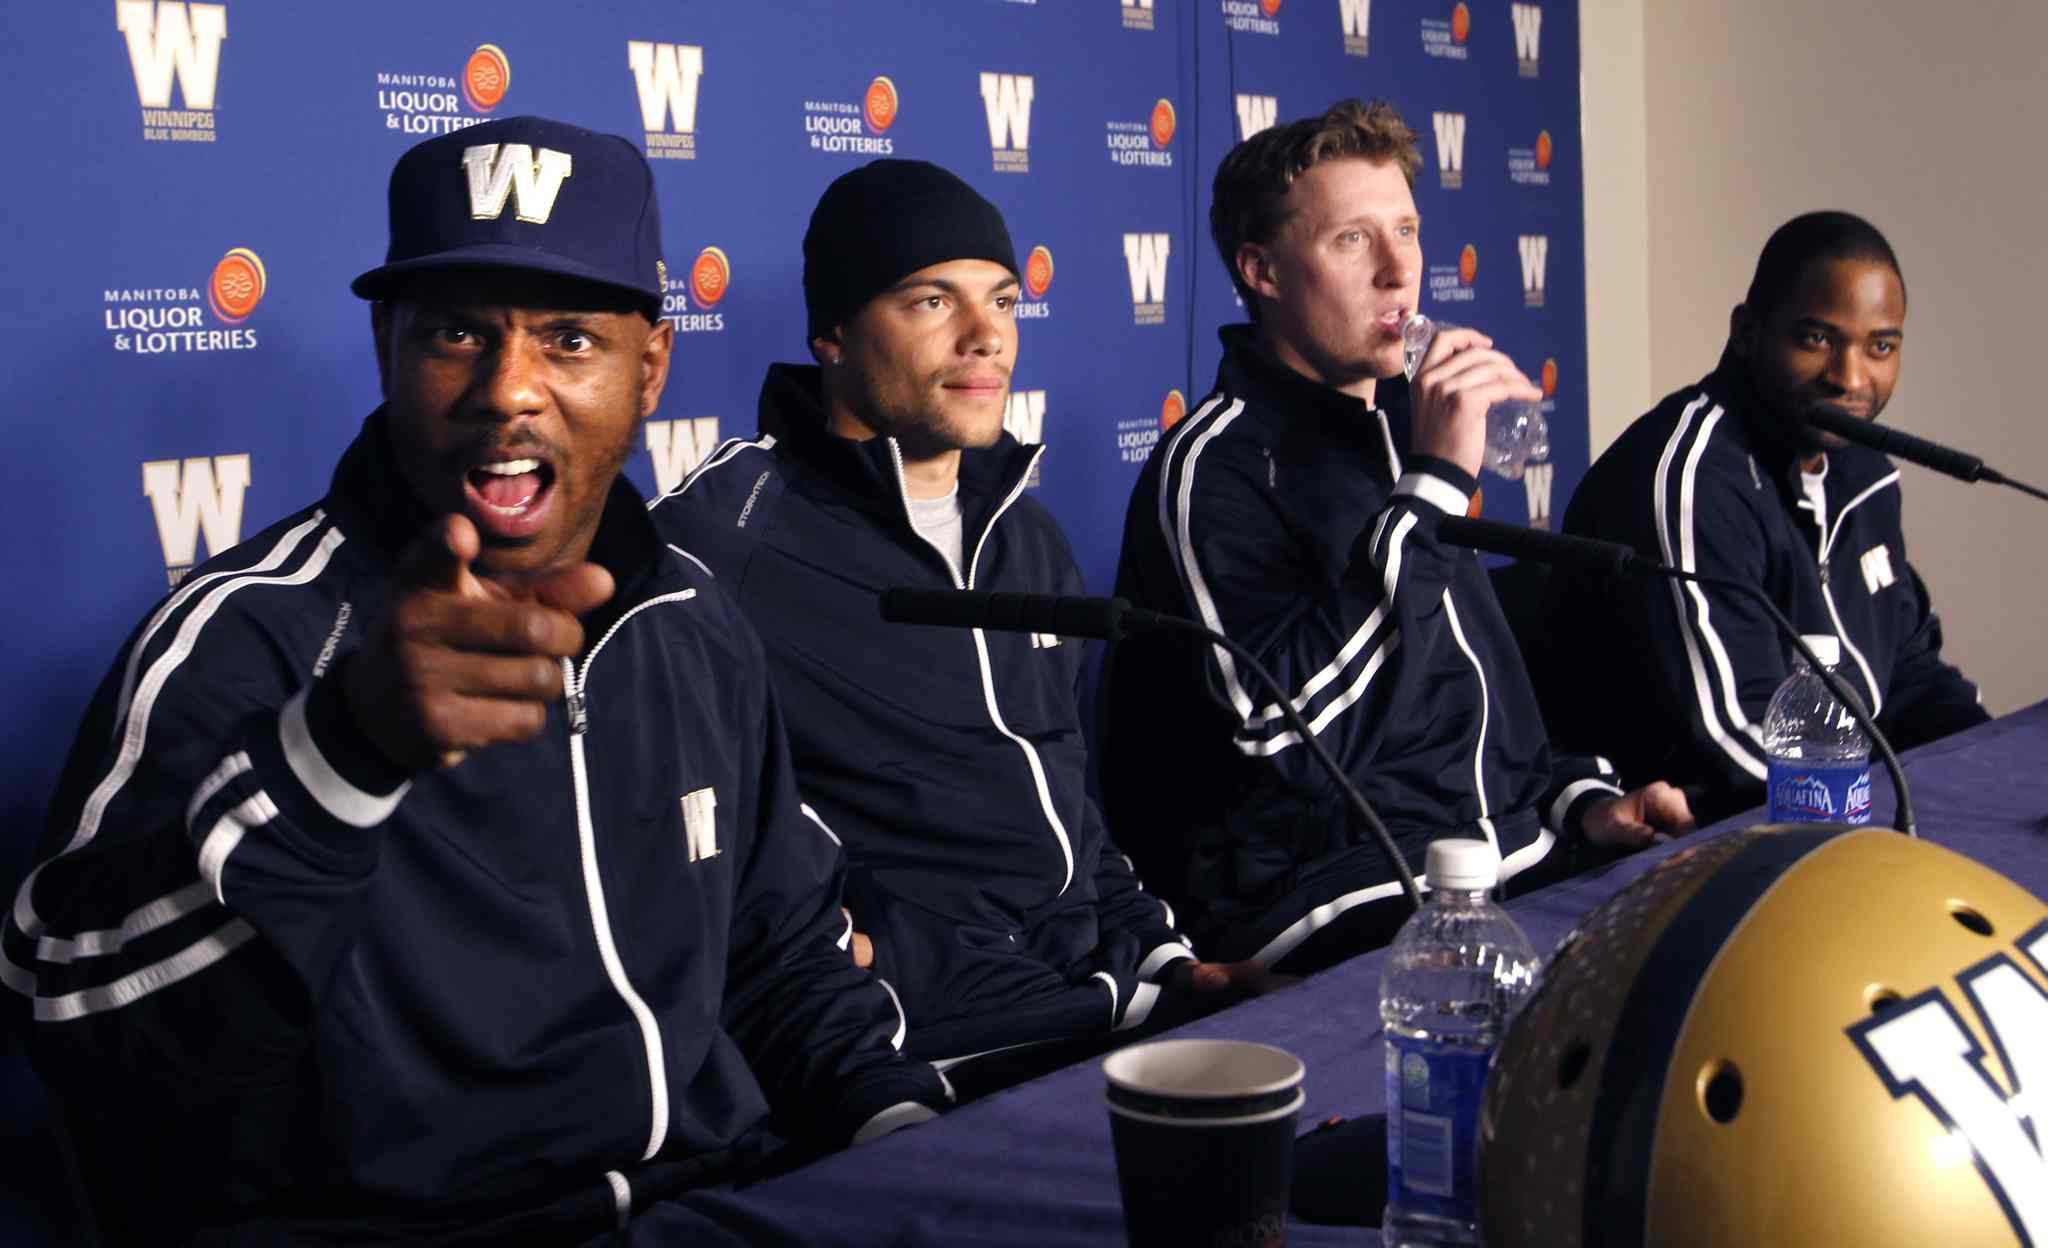 Three of the newest Blue Bombers met the media Thursday. From left: defensive back Korey Banks, wide receiver Nick Moore, quarterback Drew Willy and Bombers veteran wide receiver Cory Watson.